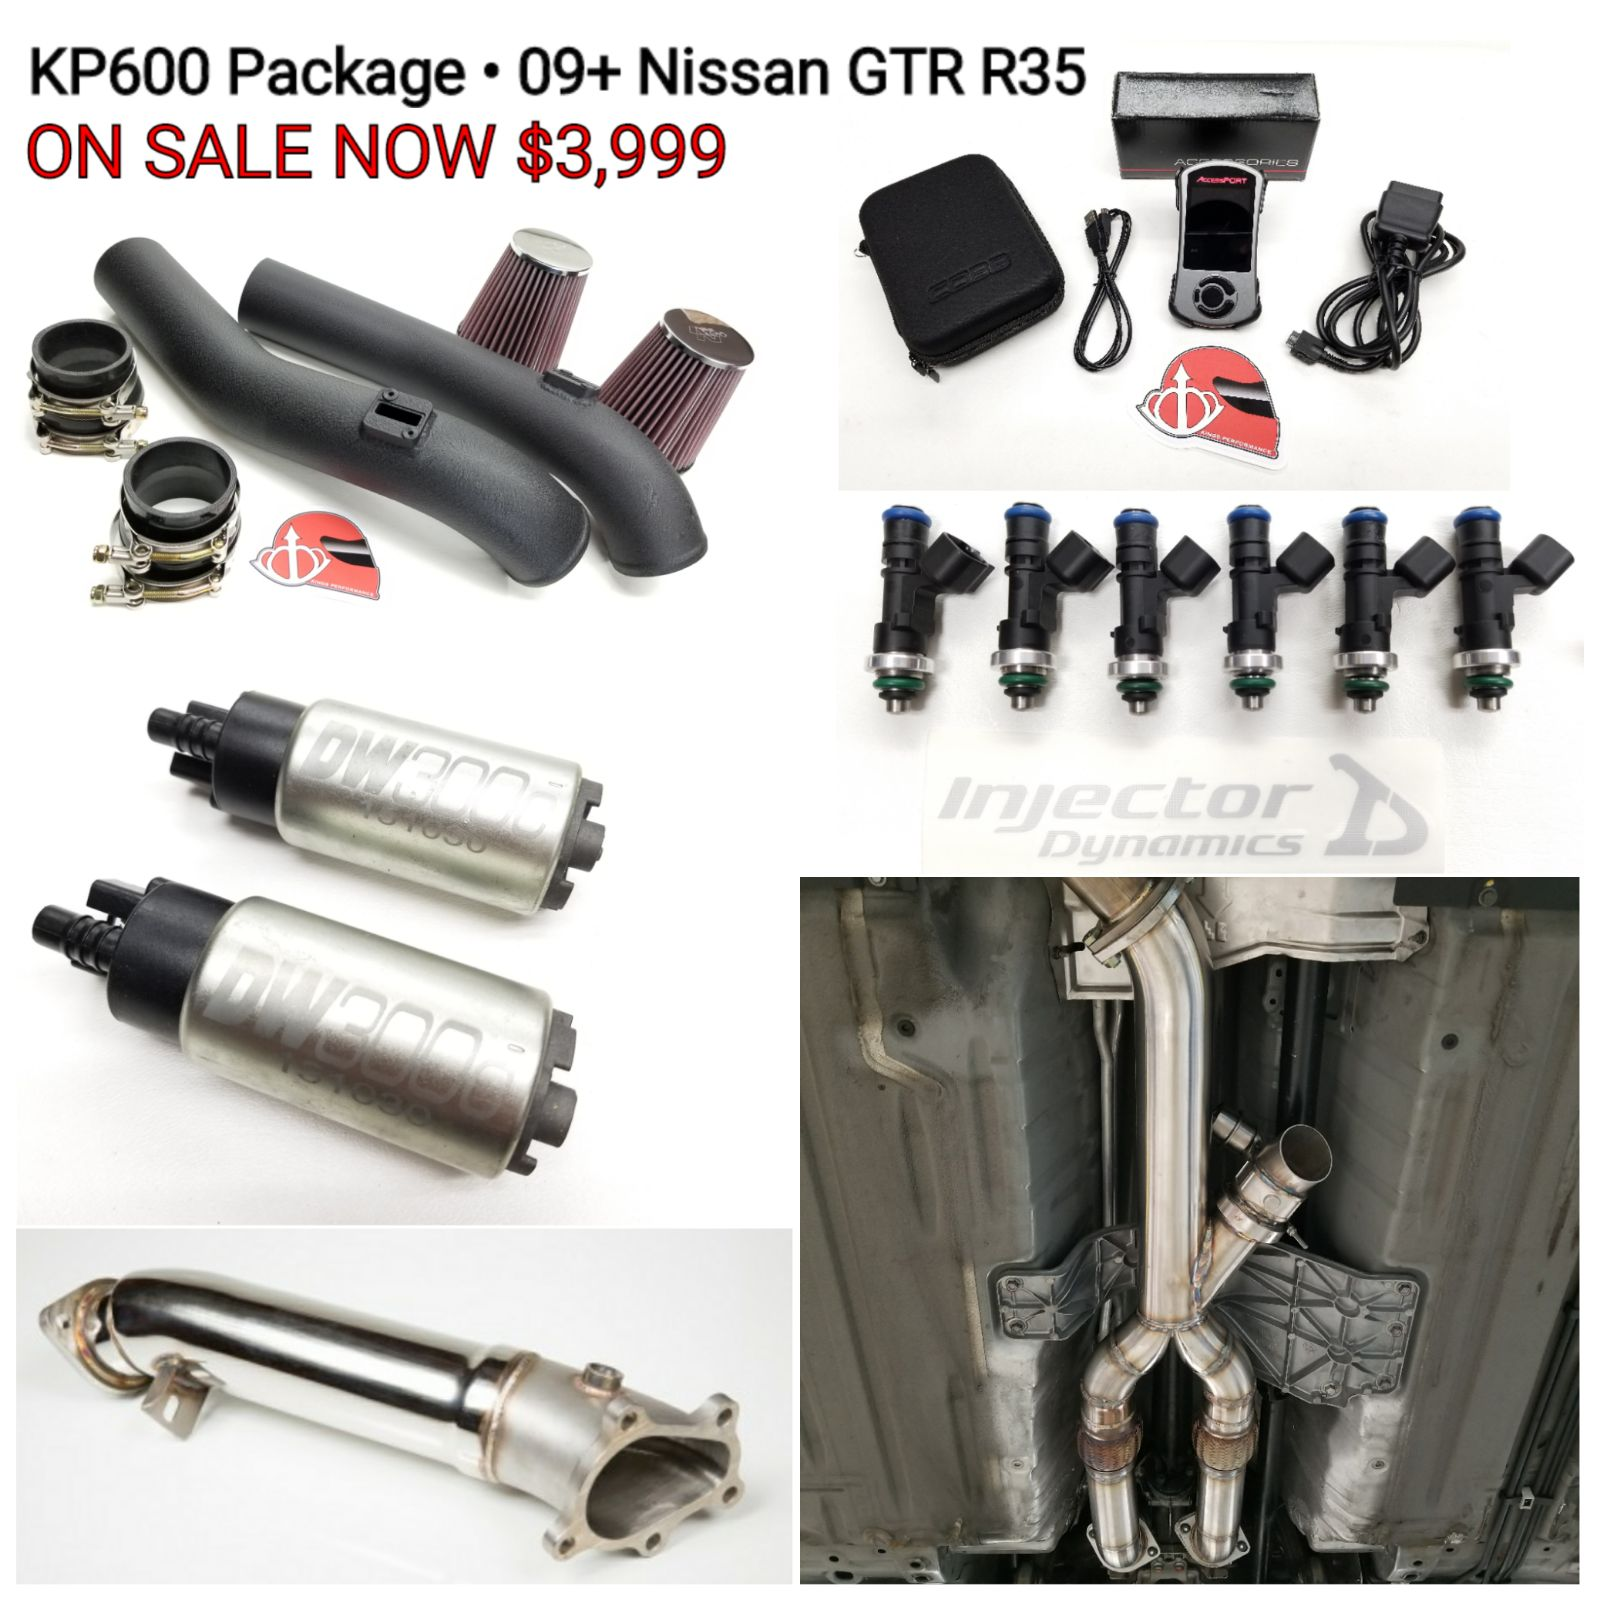 KP600 Nissan GTR R35 power package is here!